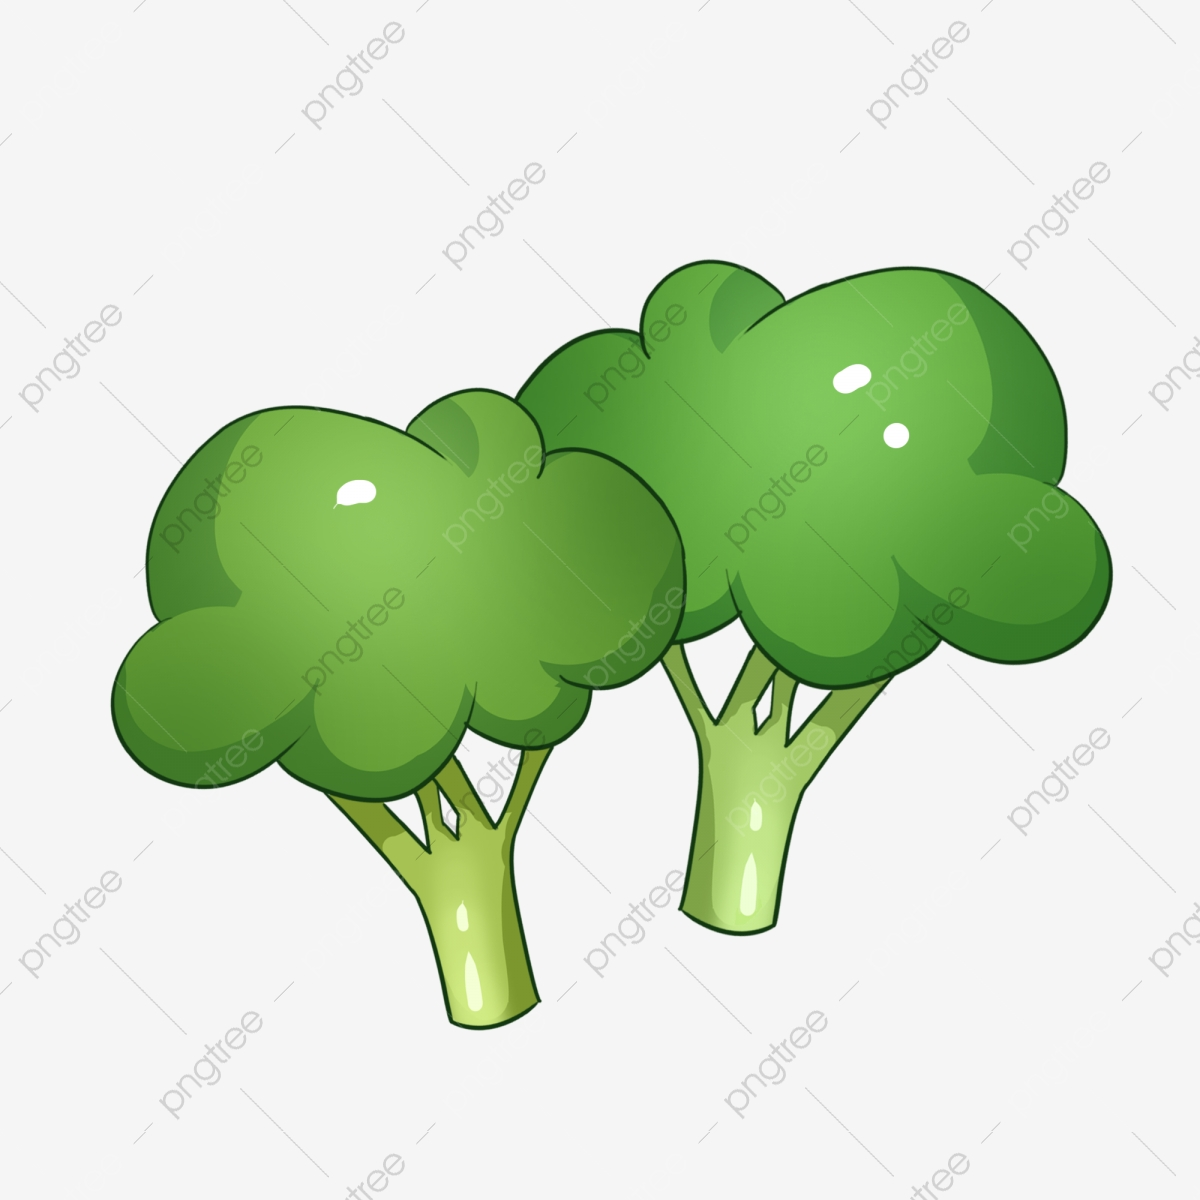 transparent library Broccoli clipart vegitables. Tipped vegetables png .